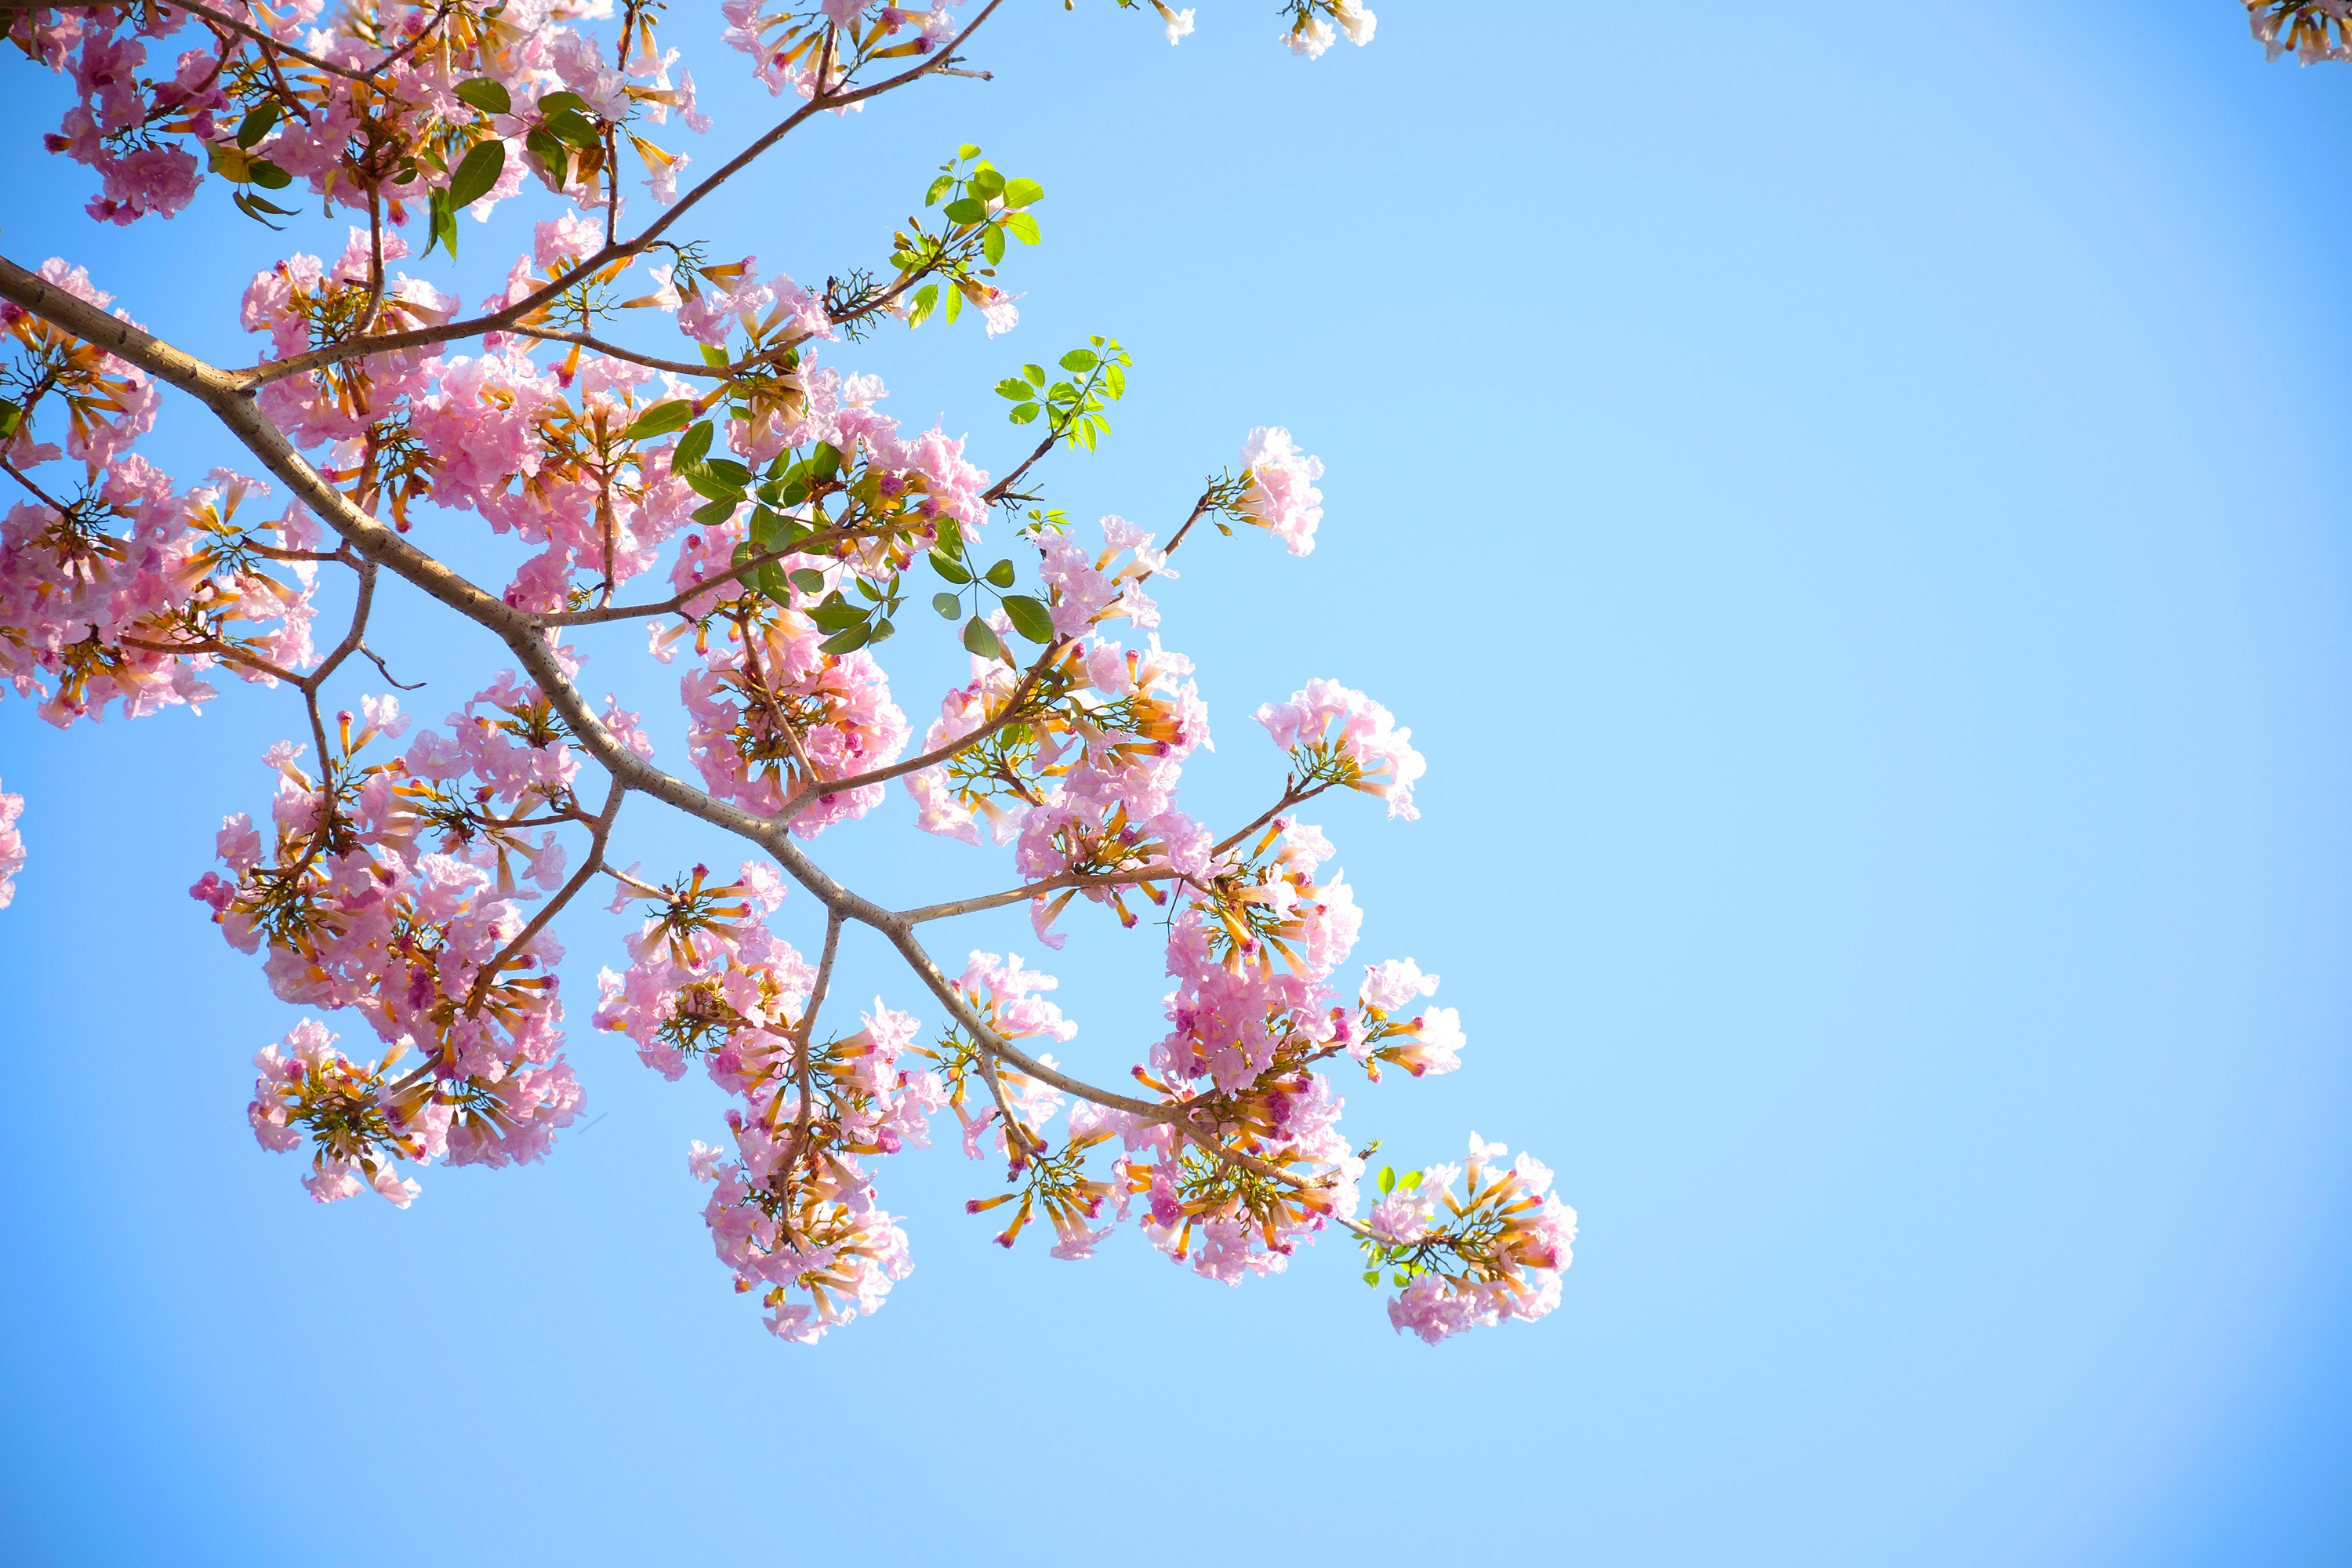 Pink Petaled Flowers Blooming during Daytime, Sky, Tree, Nature, Flowers, HQ Photo